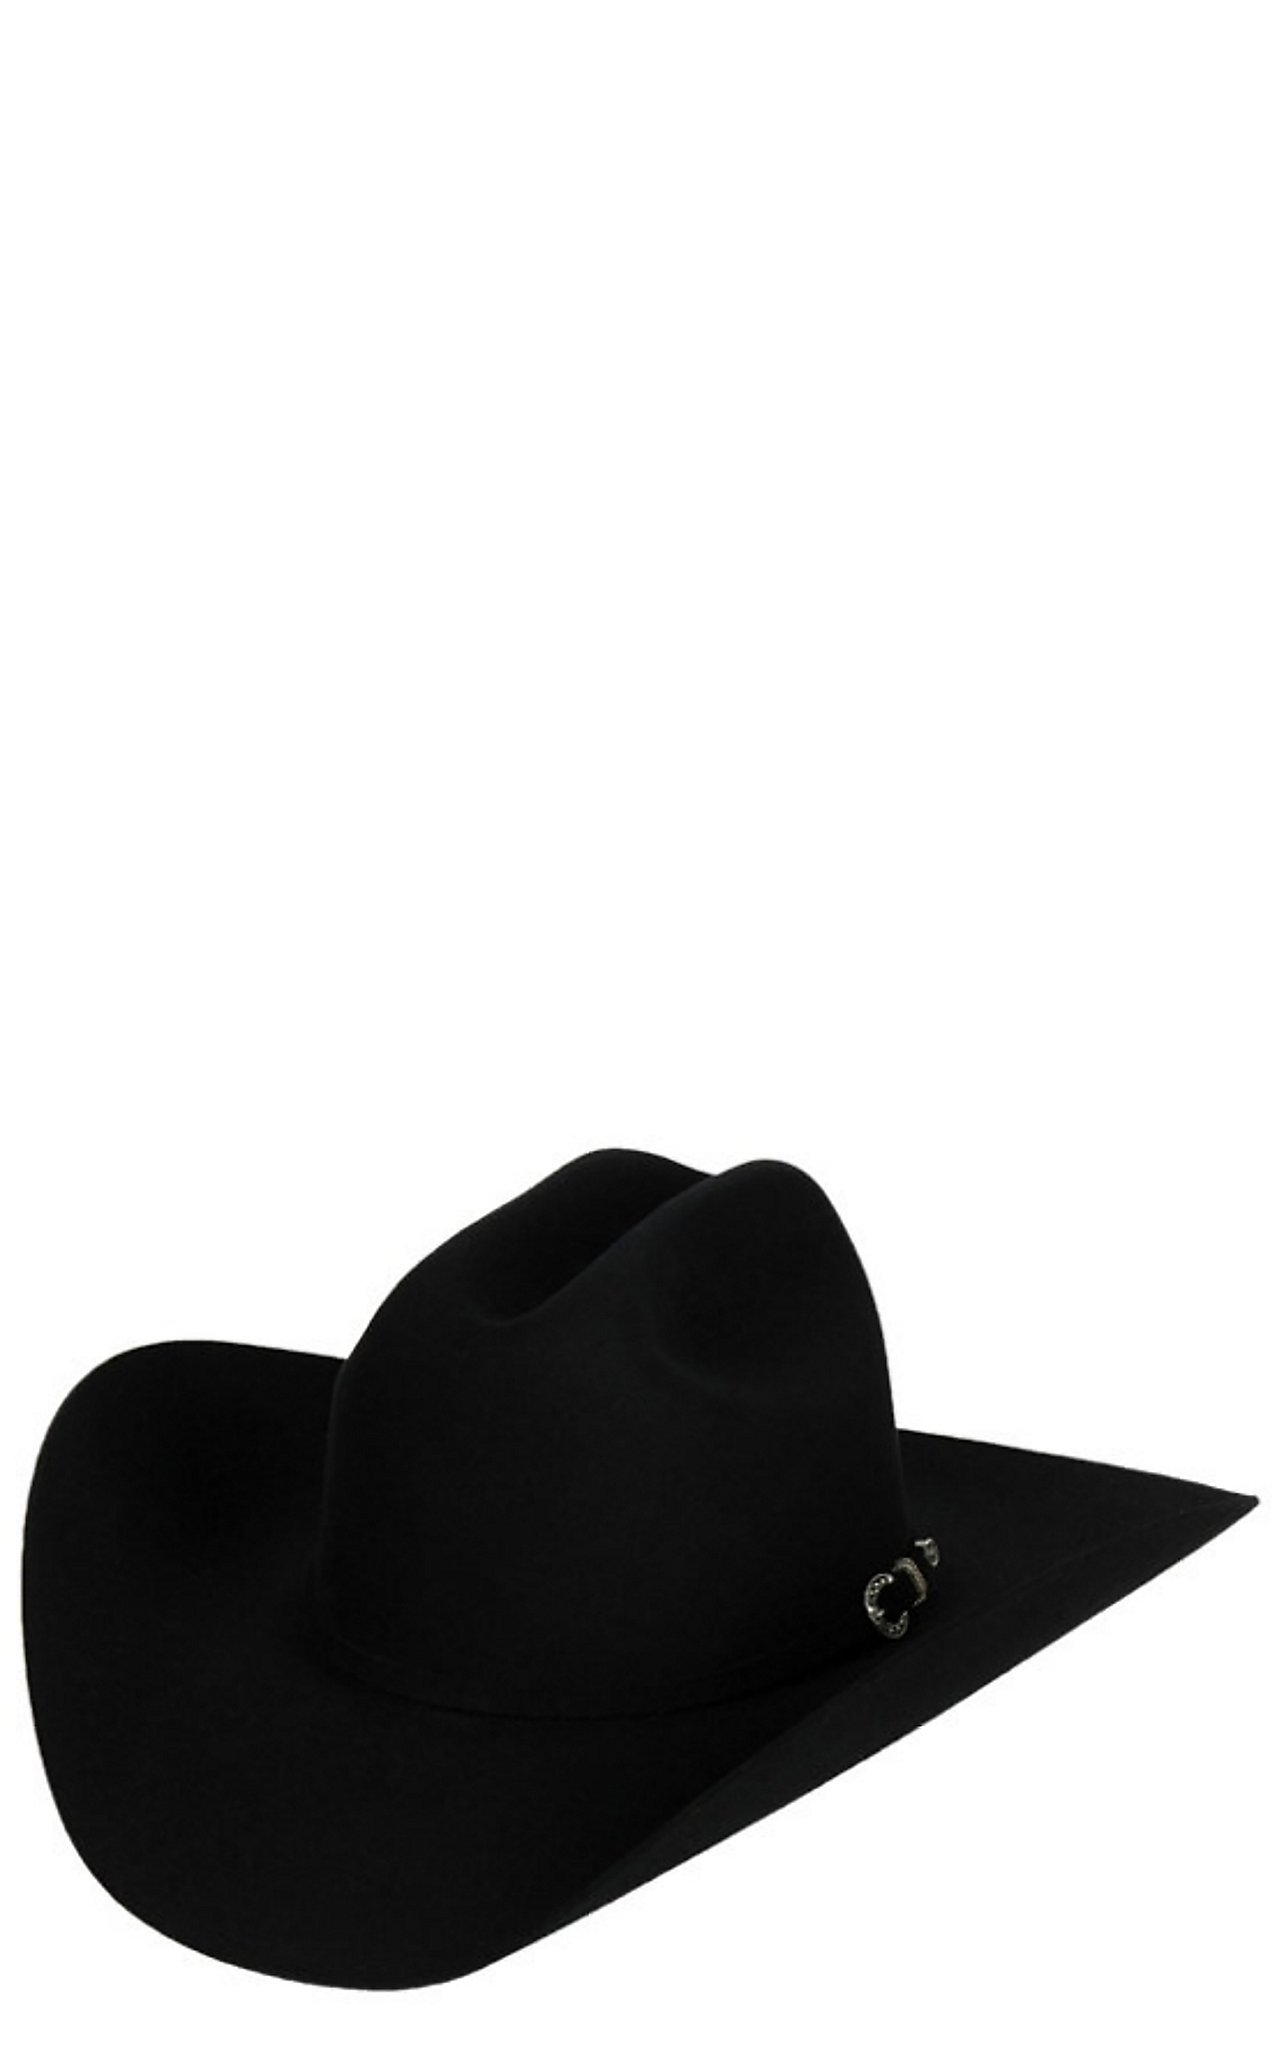 87bac9cacc7 Resistol 6X George Strait Collection Heartland Black Felt Cowboy Hat